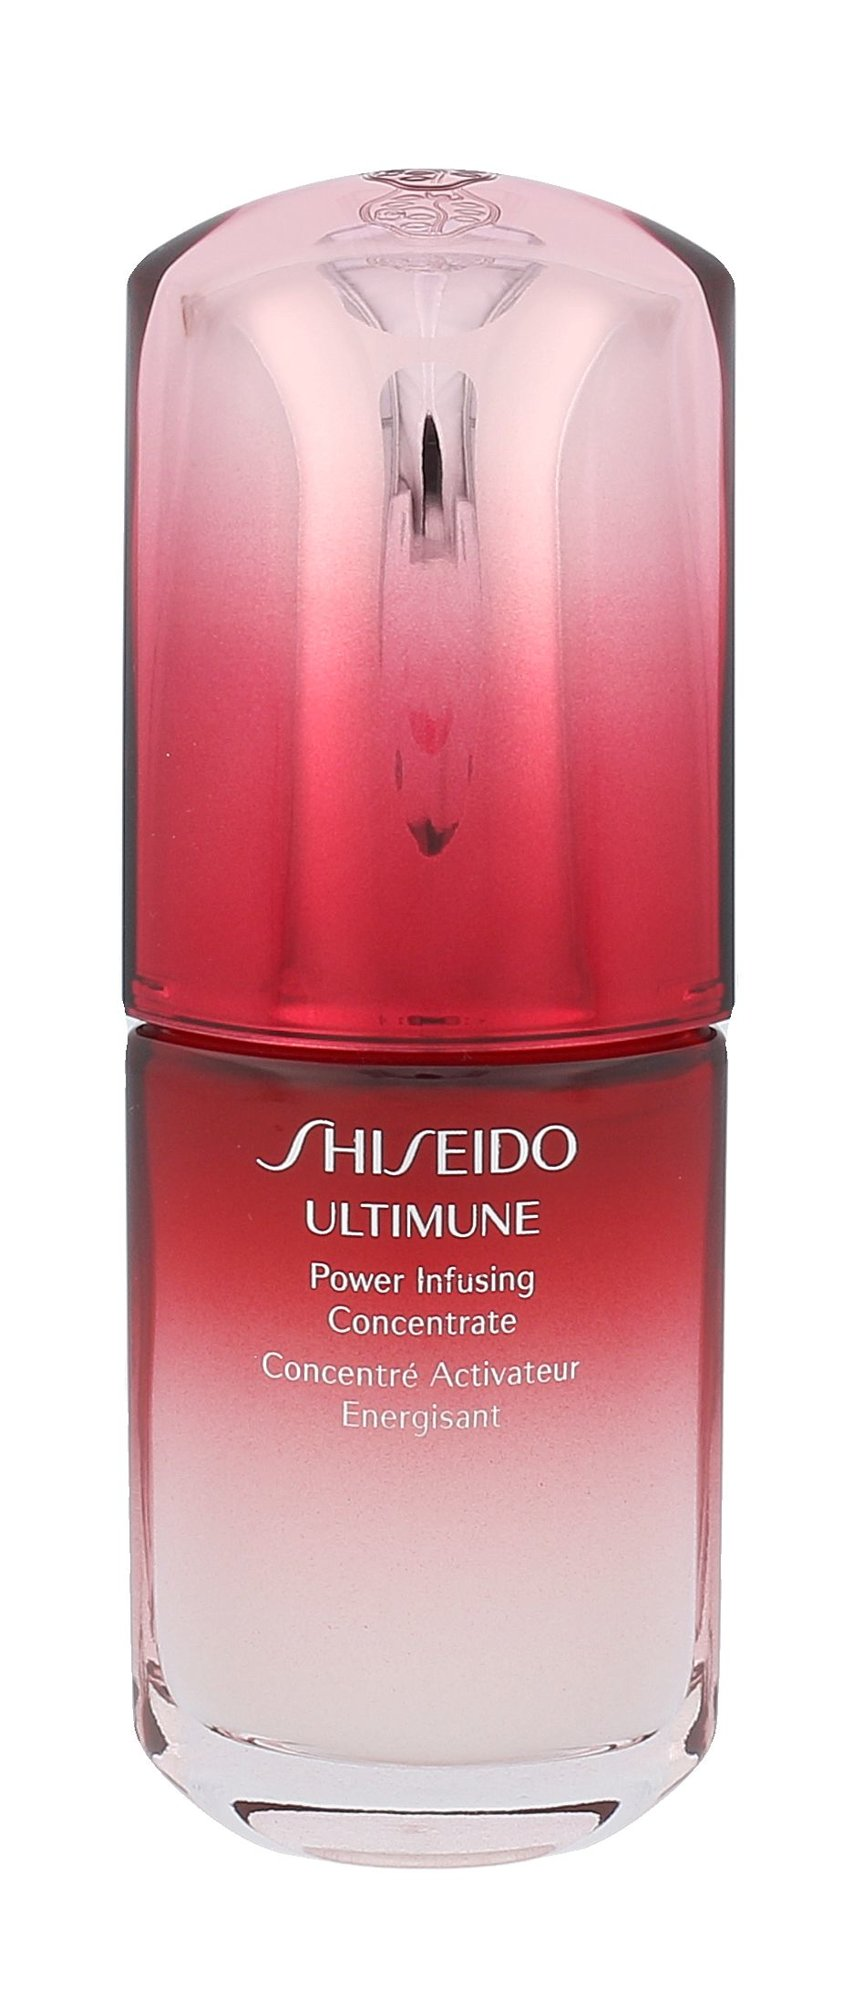 Shiseido Ultimune Skin Serum 30ml